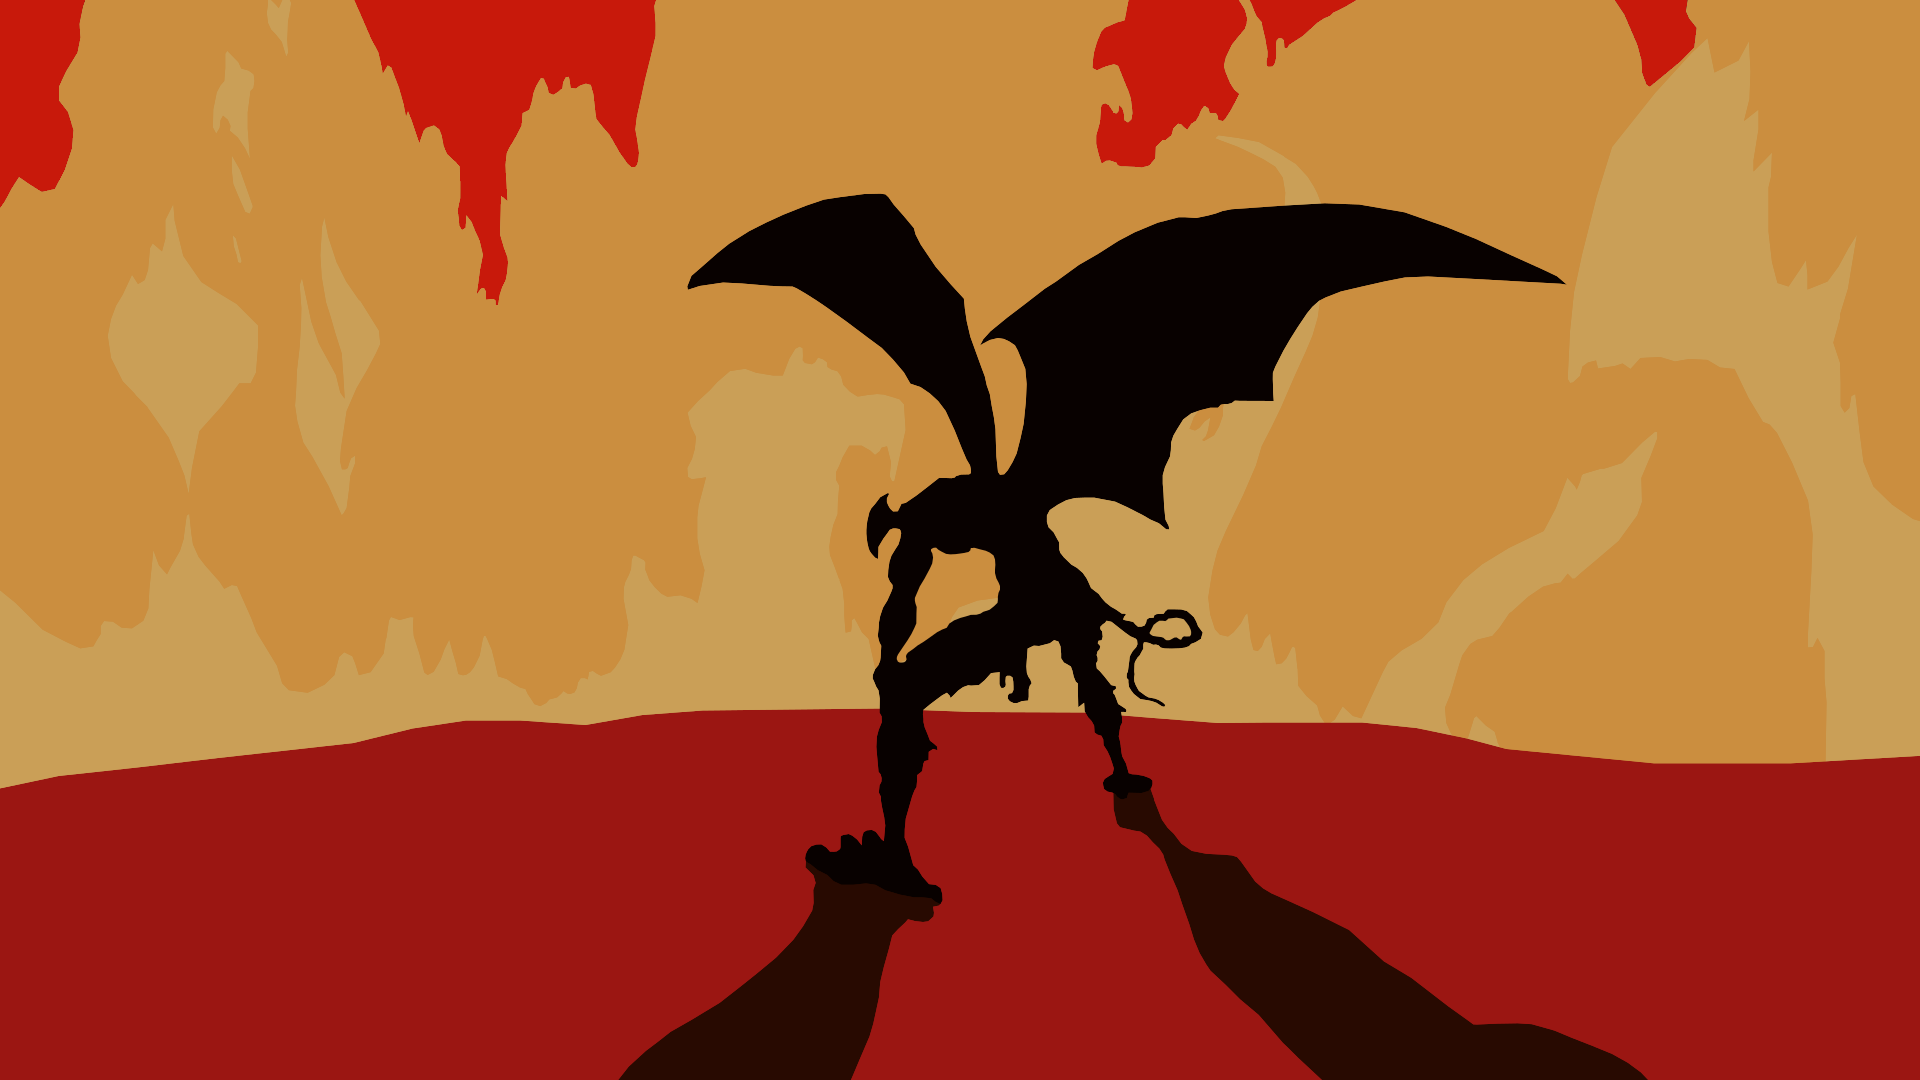 Devilman Crybaby Minimalist Wallpaper Akira By Sharkjumps On Deviantart